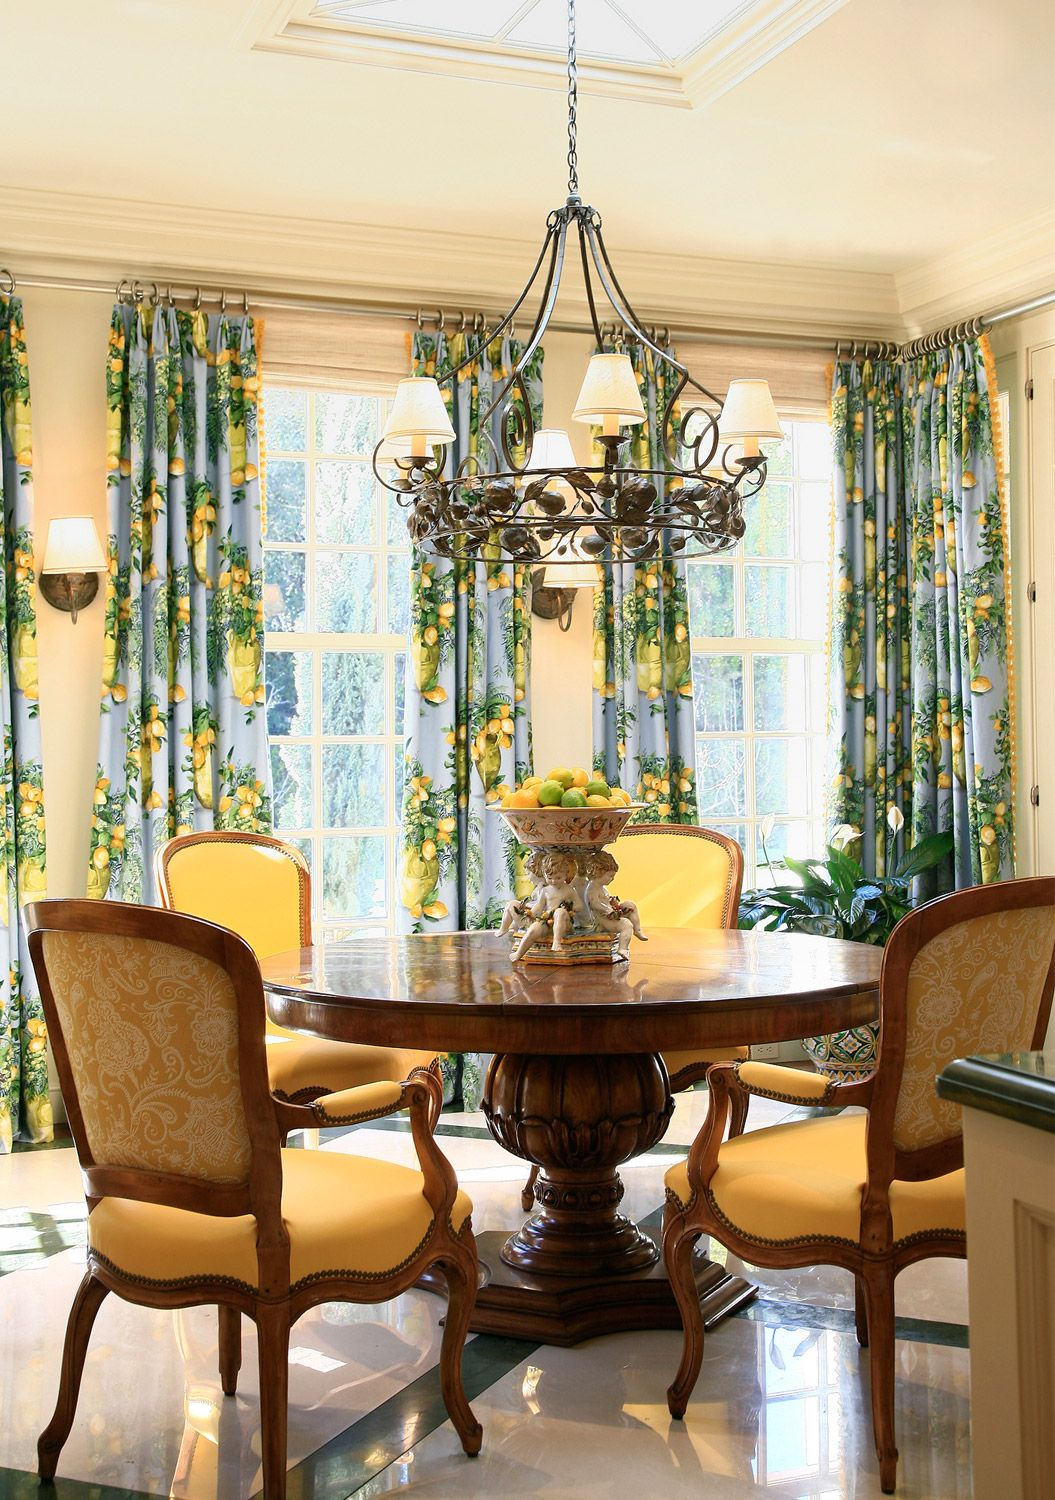 Dining Room Chandeliers Traditional Glamorous From The Portfolio Of Suzanne Tuckertucker And Marks  Gingham Inspiration